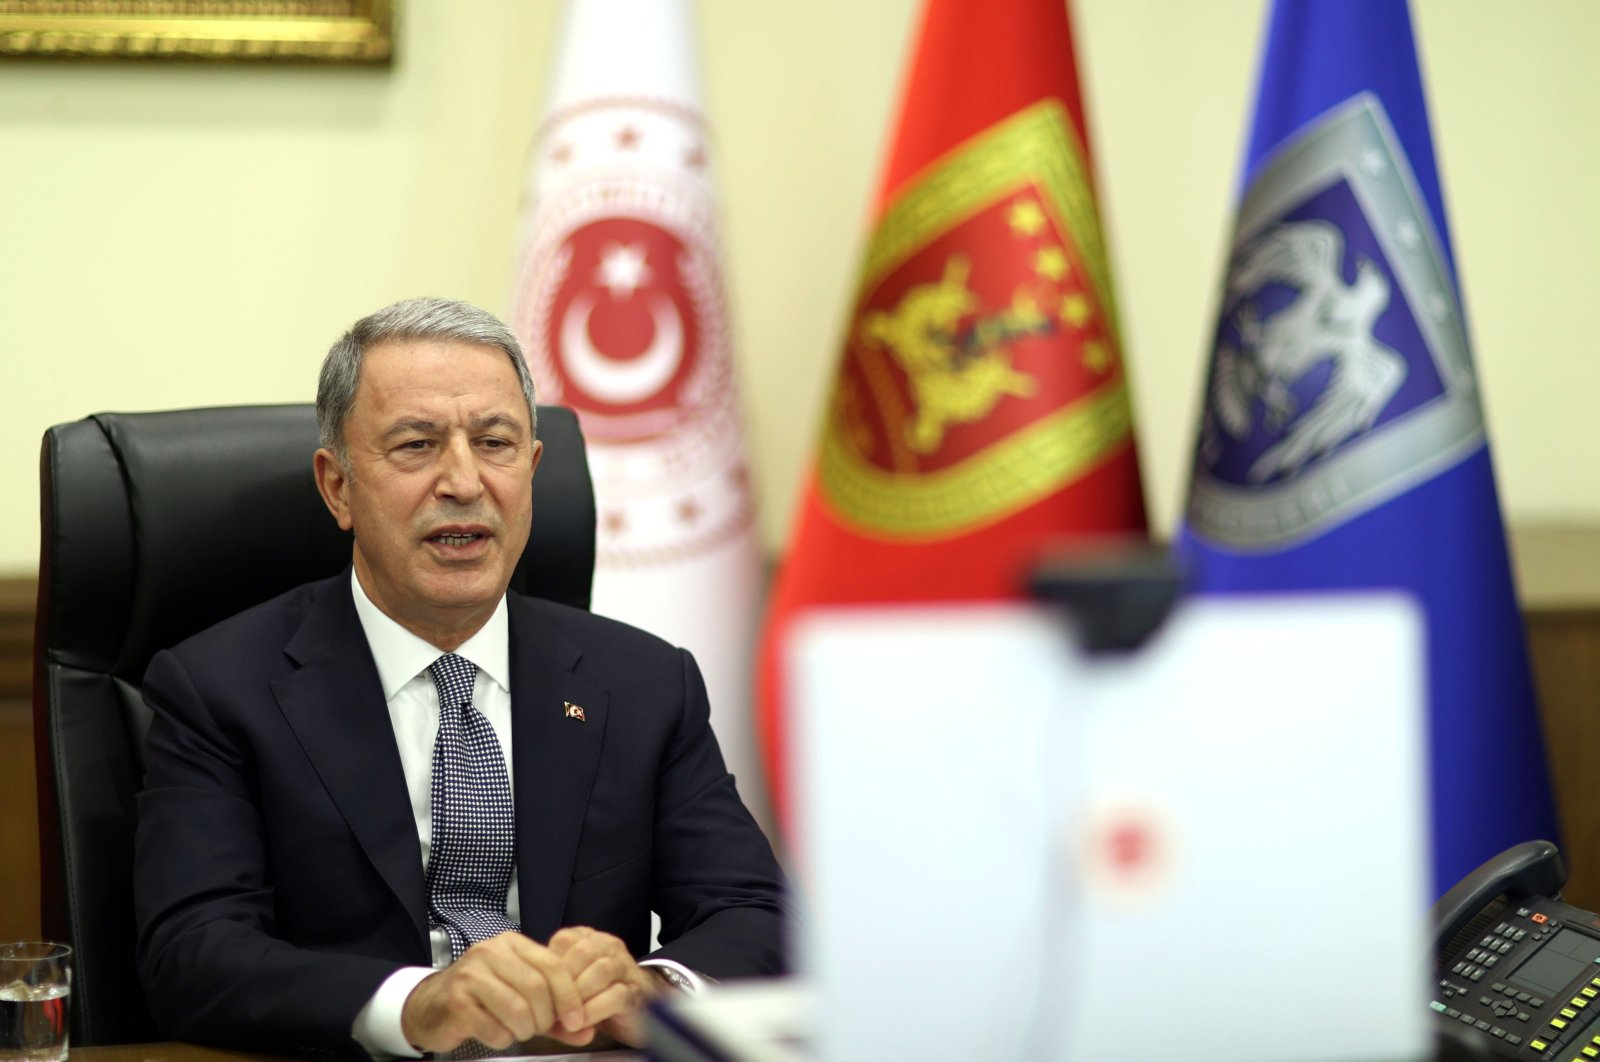 Turkish Defense Minister Hulusi Akar speaks at a virtual meeting of the 12th Halifax Security Forum in Ankara, Turkey, Nov. 23, 2020. (DHA Photo)